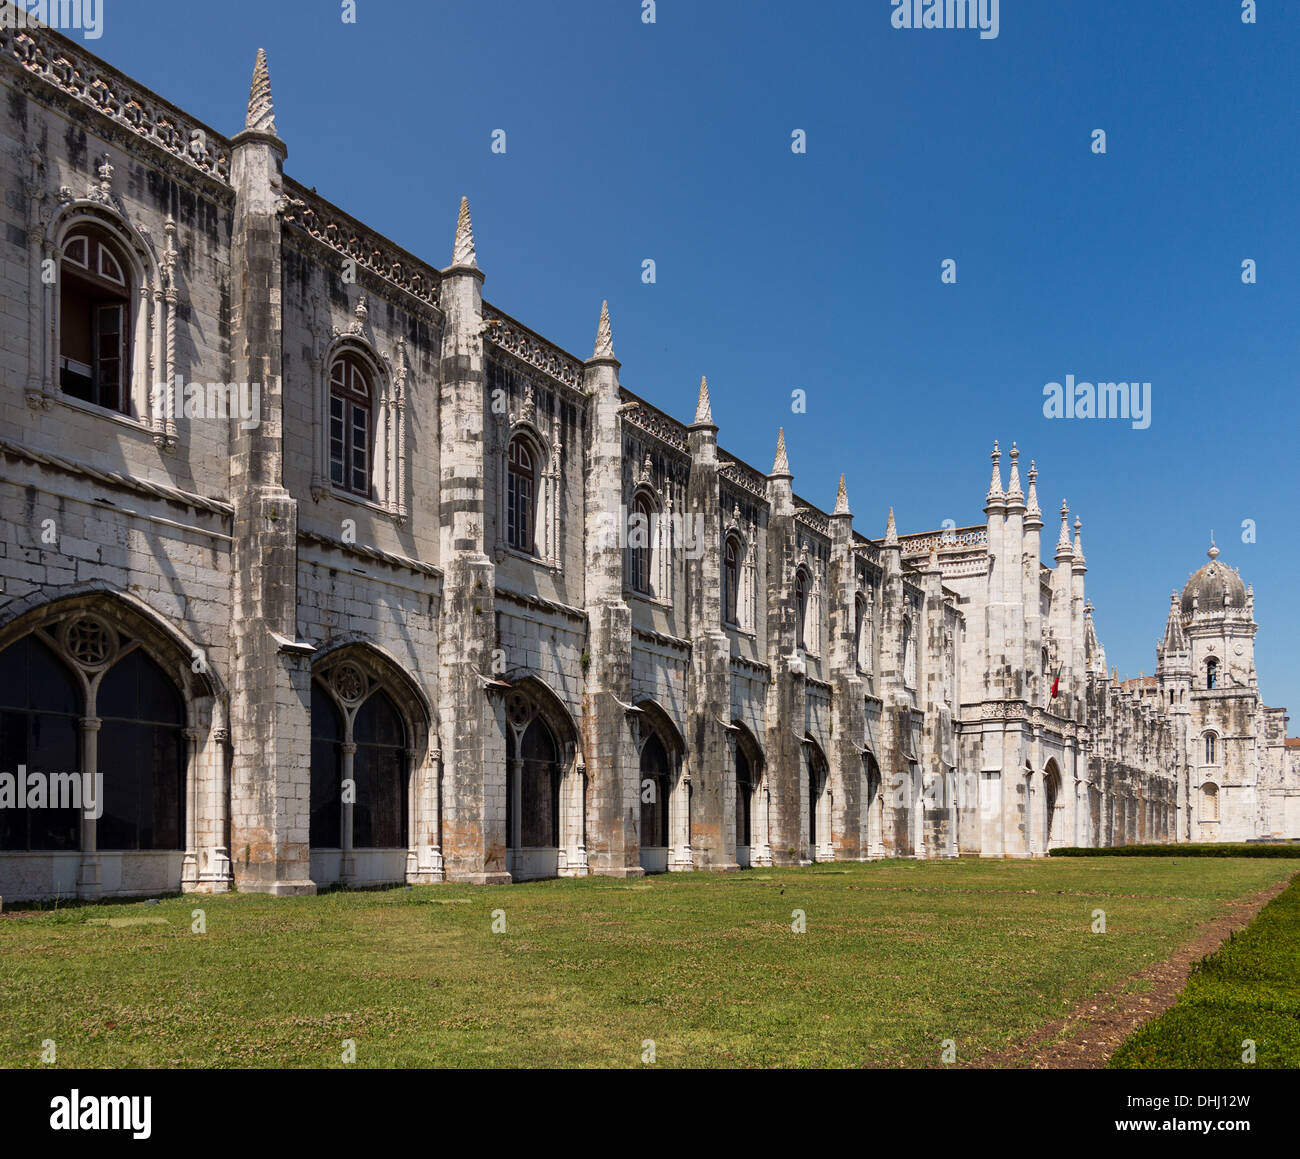 Detail of ornate gothic carvings and architecture around entrance to Jeronimos Monastery in Belem near Lisbon Portugal - Stock Image